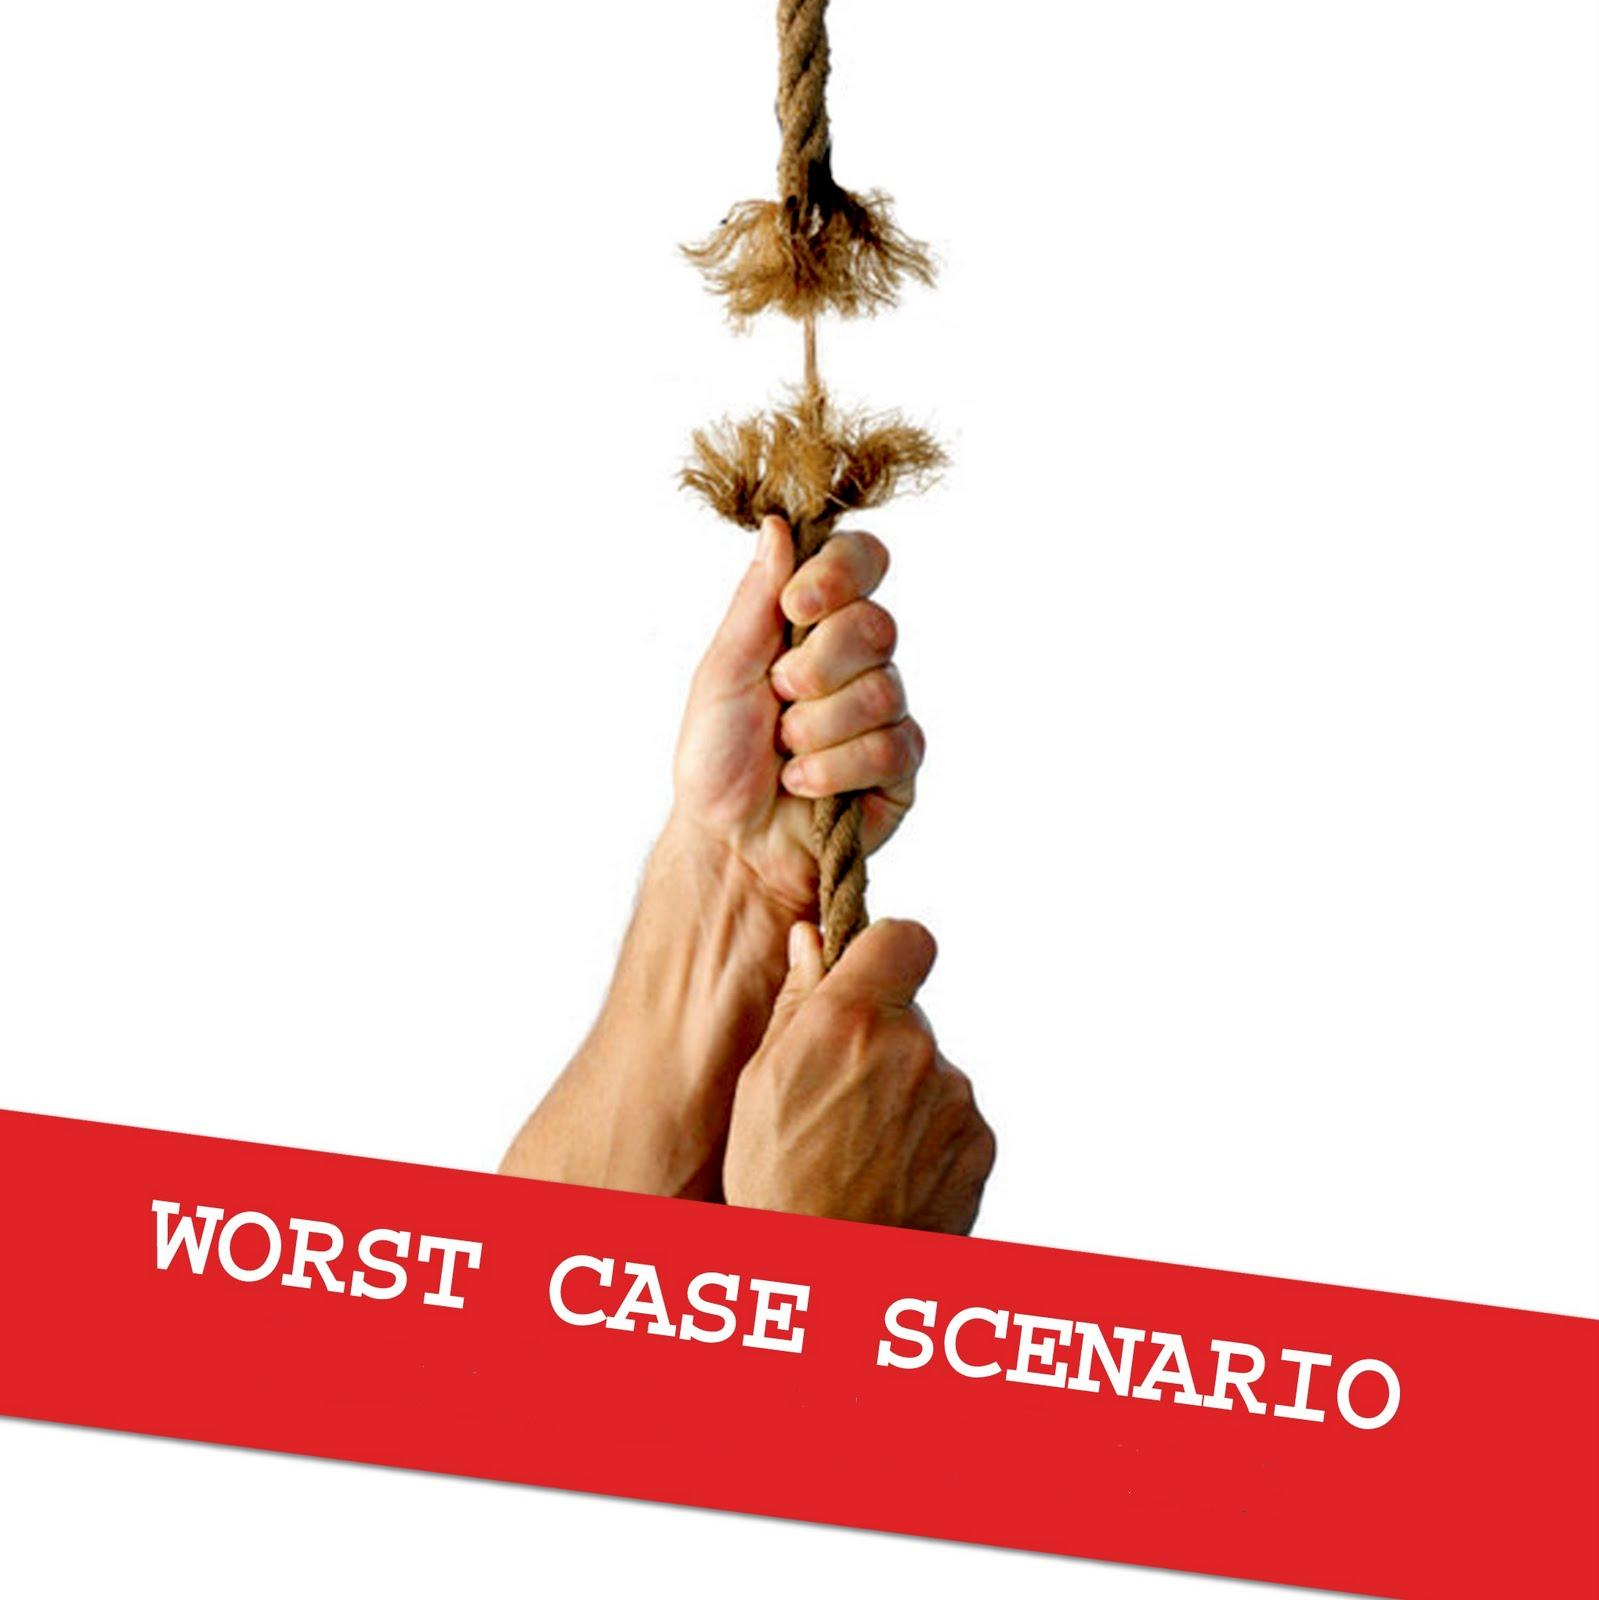 the worst case scenario dating The ultimate worst-case scenario survival handbook joshua piven from: $399  the worst-case scenario dating & sex address book joshua piven from: n/a.